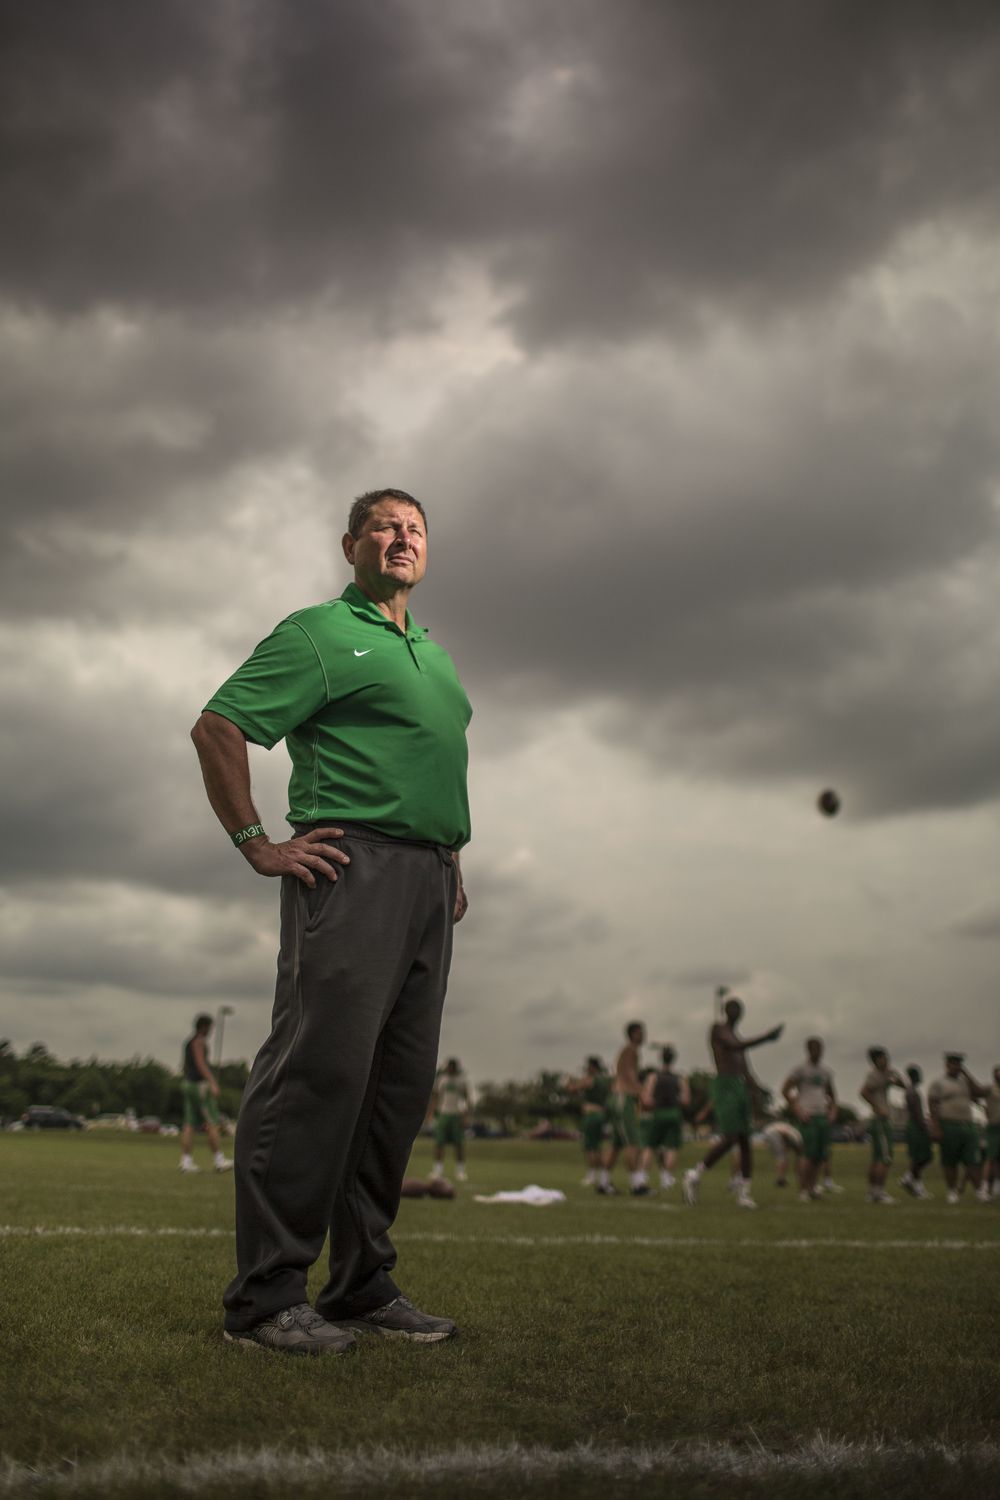 20150507_globe_brenham_football_coaches_0051.jpg